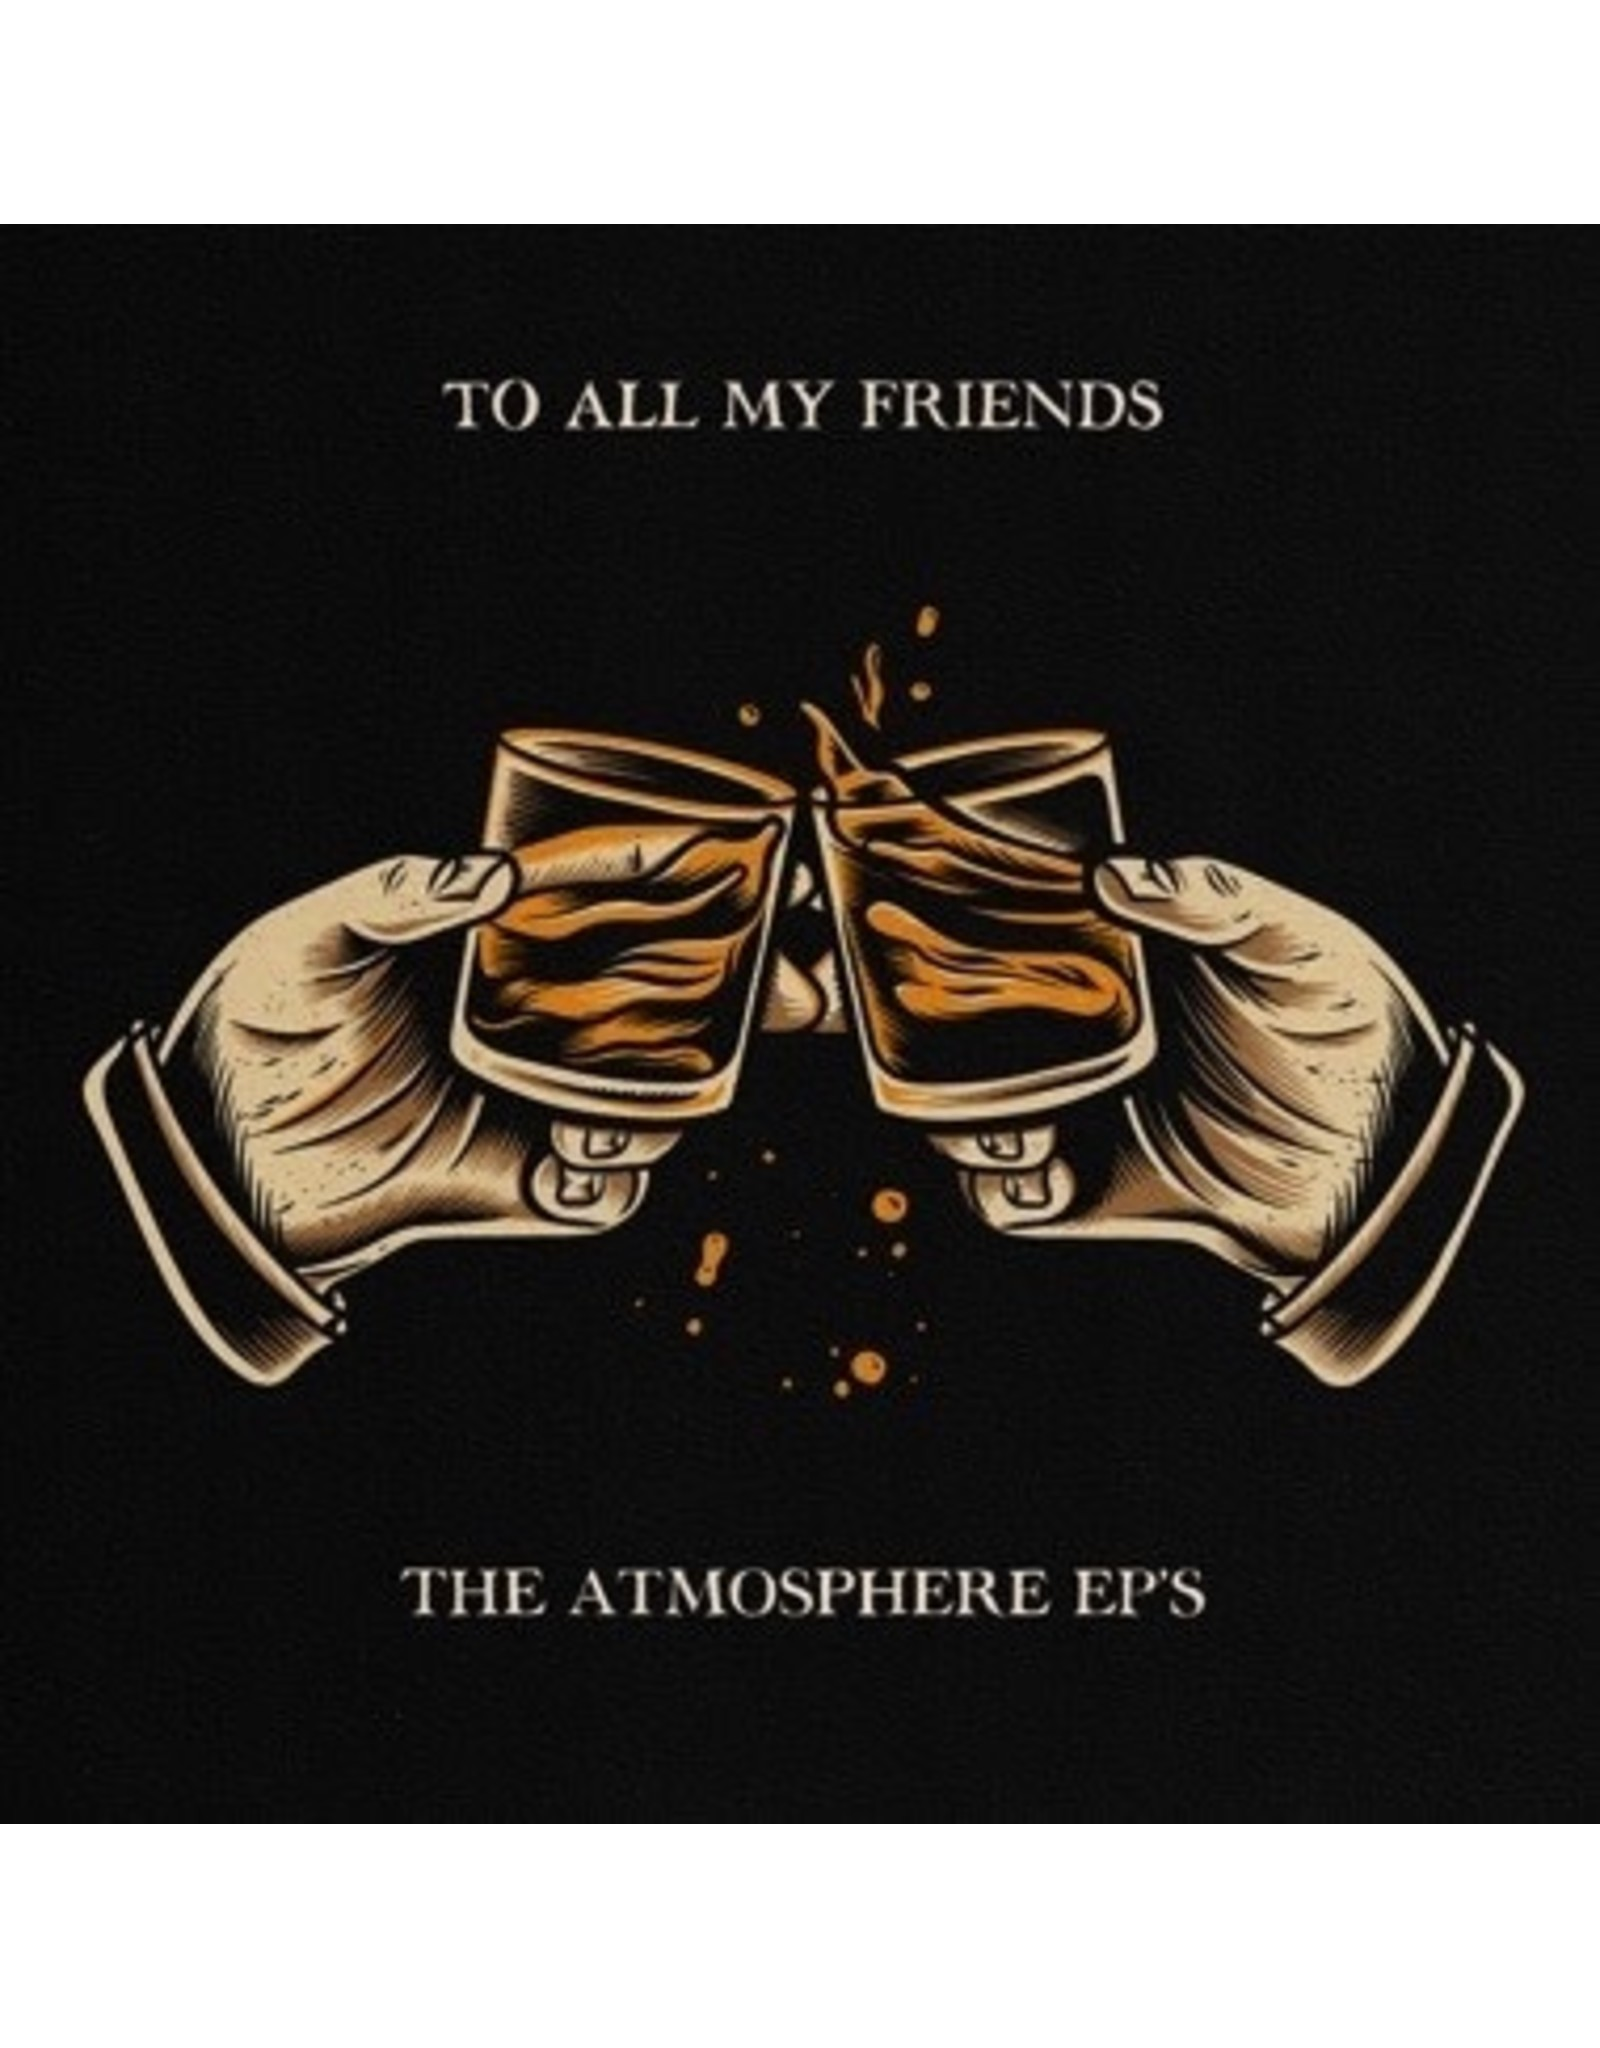 New Vinyl Atmosphere - To All My Friends, Blood Makes The Bible Holy: The Atmosphere EPs 2LP